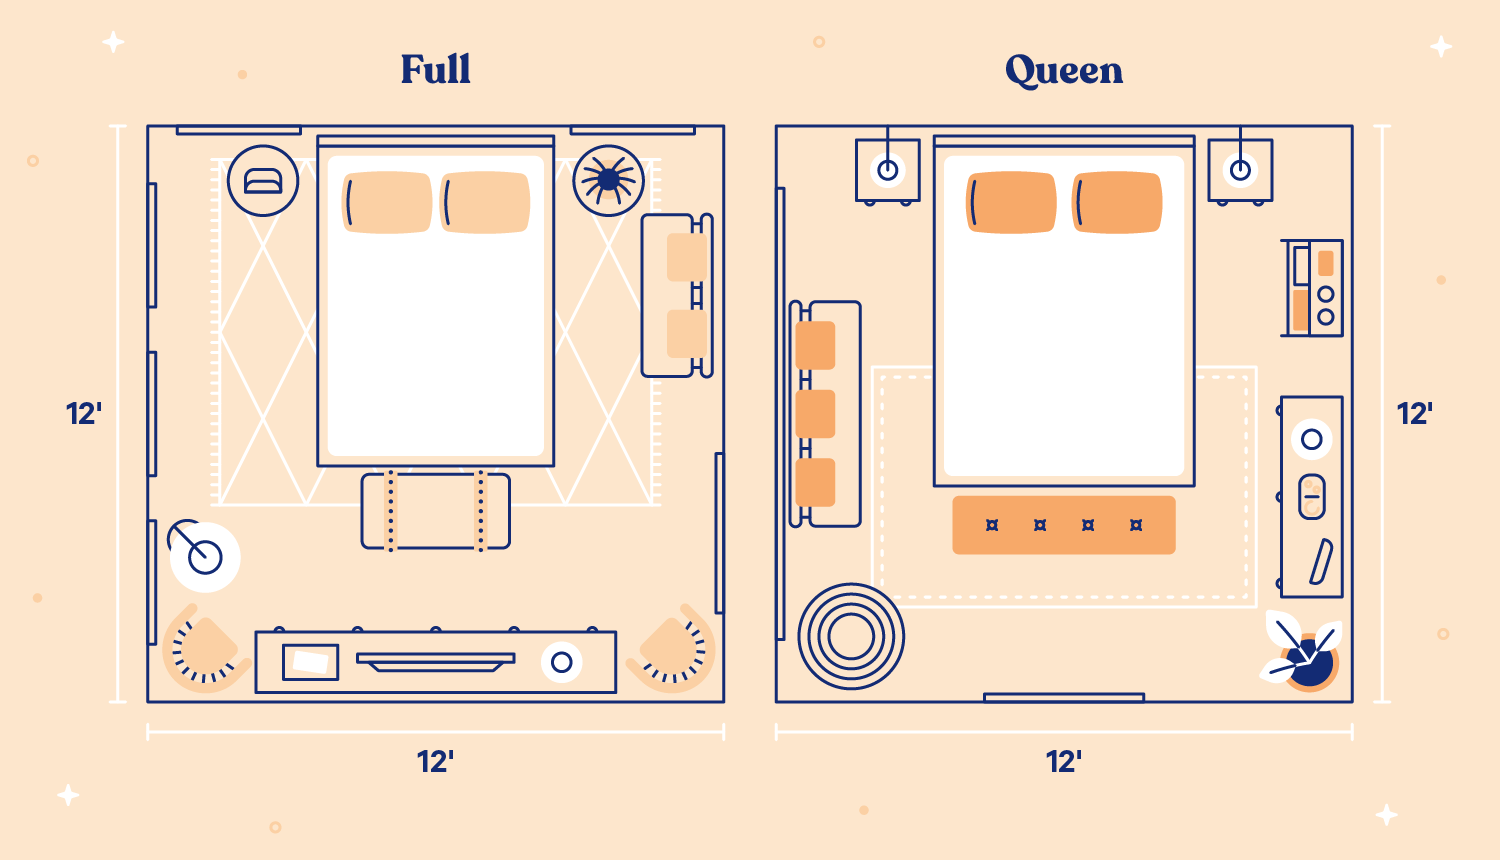 Two 12' by 12' rooms side-by-side showing the full takes up slightly less space than the queen-sized bed.